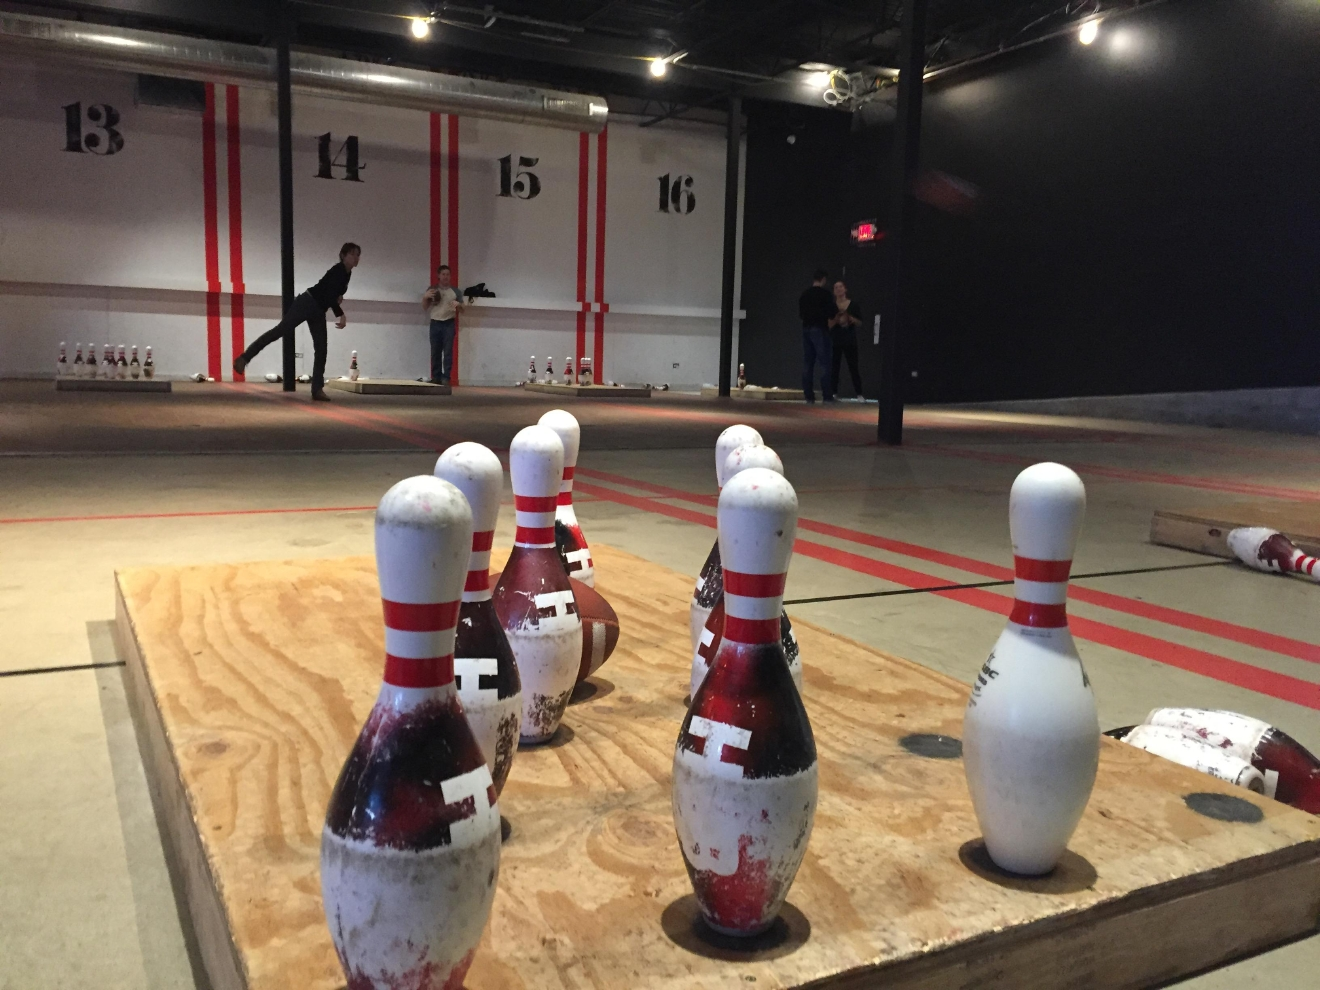 The Super Bowl normally signals the end of football season, but there's a new sport popping up that allows people to continue to throw the pigskin. At HUB Stadium in Auburn Hills this new game is called bomb bowling. (Credit: Stephanie Parkinson)